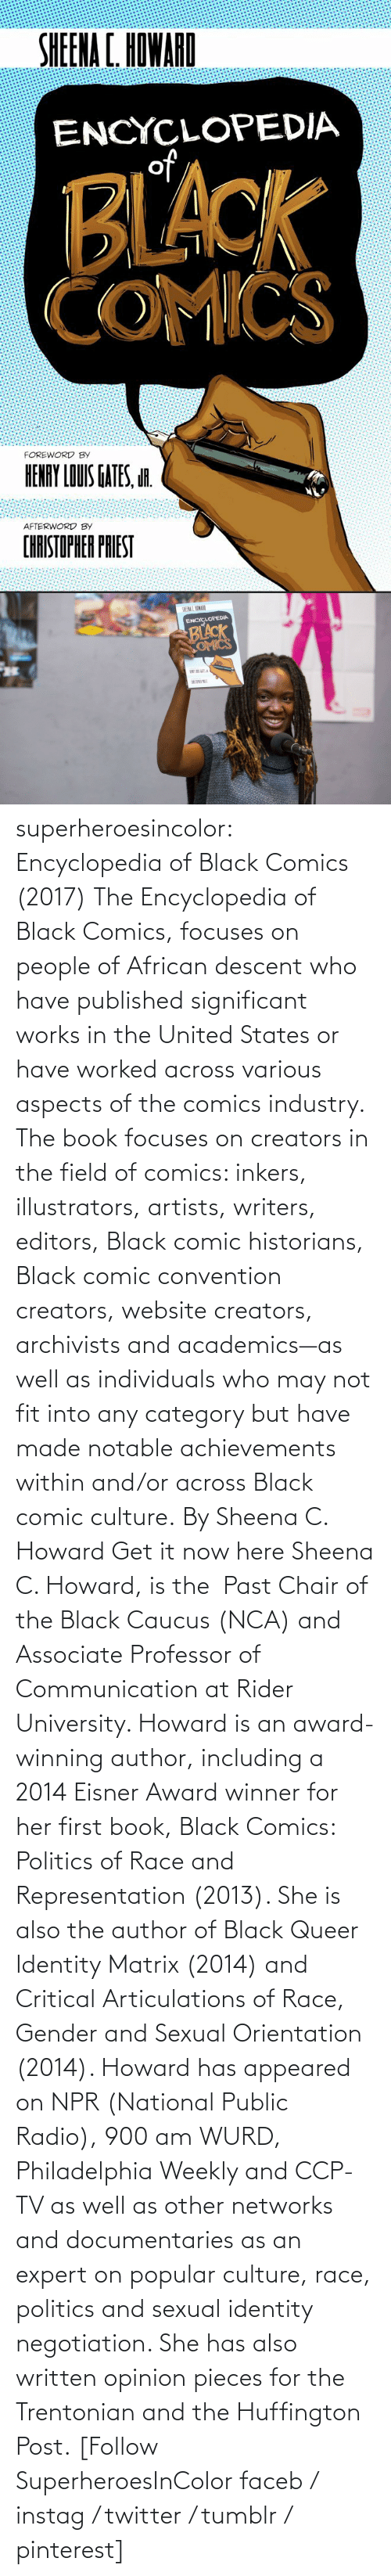 may: superheroesincolor: Encyclopedia of Black Comics (2017) The Encyclopedia of Black Comics, focuses on people of African descent who have published significant works in the United States or have worked across various aspects of the comics industry.  The book focuses on creators in the field of comics: inkers, illustrators, artists, writers, editors, Black comic historians, Black comic convention creators, website creators, archivists and academics—as well as individuals who may not fit into any category but have made notable achievements within and/or across Black comic culture. By Sheena C. Howard Get it now here  Sheena C. Howard, is the  Past Chair of the Black Caucus (NCA) and Associate Professor of Communication at Rider University. Howard is an award-winning author, including a 2014 Eisner Award winner for her first book, Black Comics: Politics of Race and Representation (2013). She is also the author of Black Queer Identity Matrix (2014) and Critical Articulations of Race, Gender and Sexual Orientation (2014). Howard has appeared on NPR (National Public Radio), 900 am WURD, Philadelphia Weekly and CCP-TV as well as other networks and documentaries as an expert on popular culture, race, politics and sexual identity negotiation. She has also written opinion pieces for the Trentonian and the Huffington Post.   [Follow SuperheroesInColor faceb / instag / twitter / tumblr / pinterest]